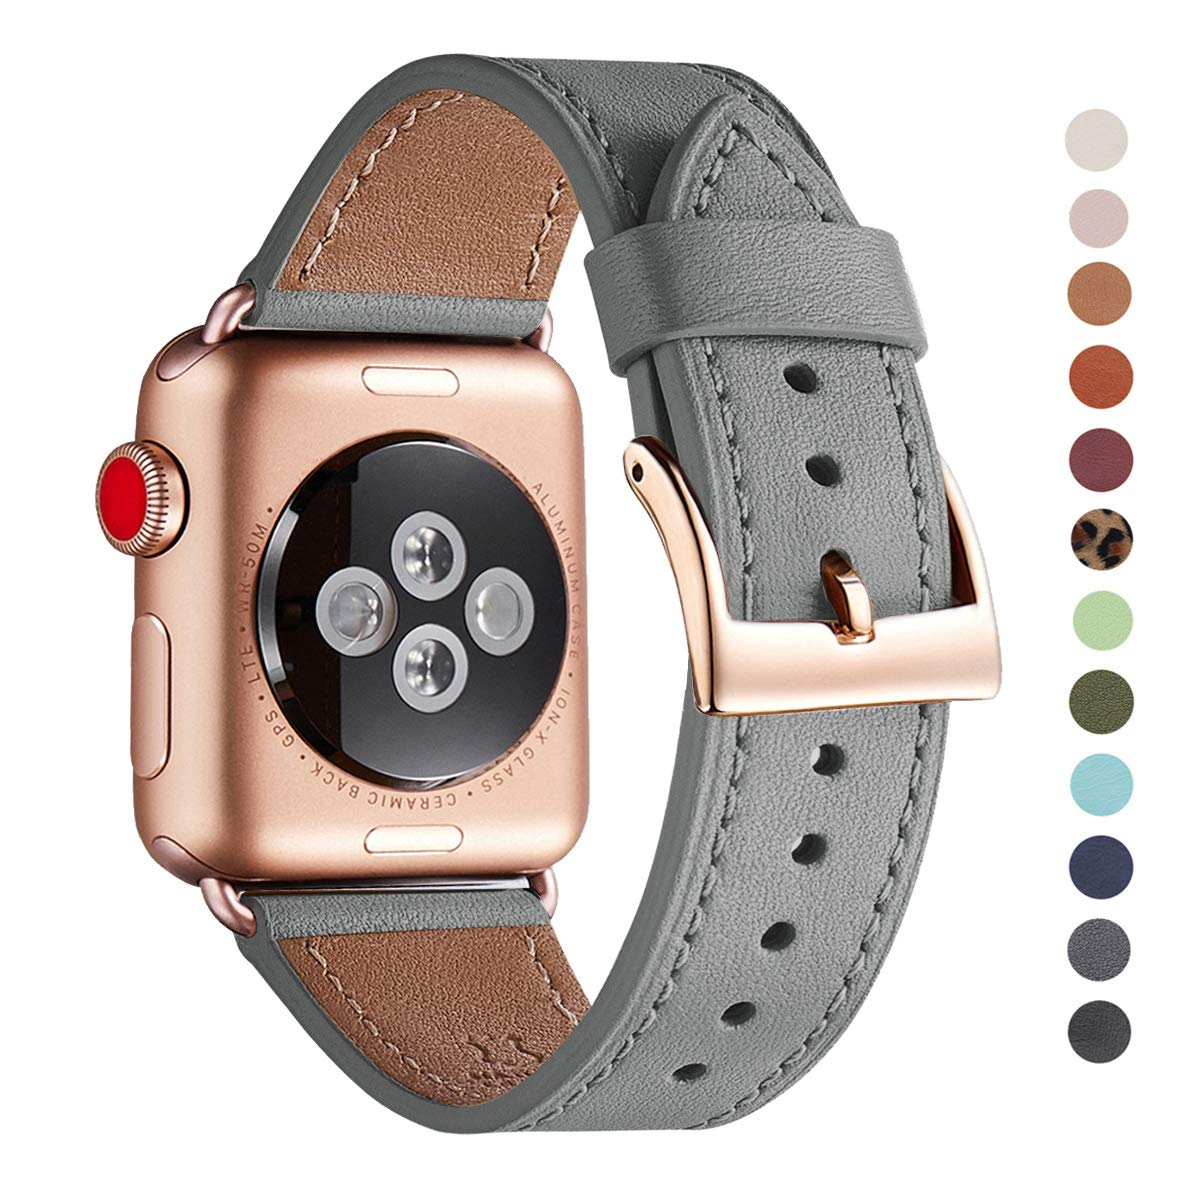 WFEAGL Compatible iWatch Band 38mm 40mm, Top Grain Leather Band with Gold Adapter (The Same as Series 5/4/3 with Gold Aluminum Case in Color) for iWatch Series 5/4/3/2/1 (Gray Band+Rose Gold Adapter)